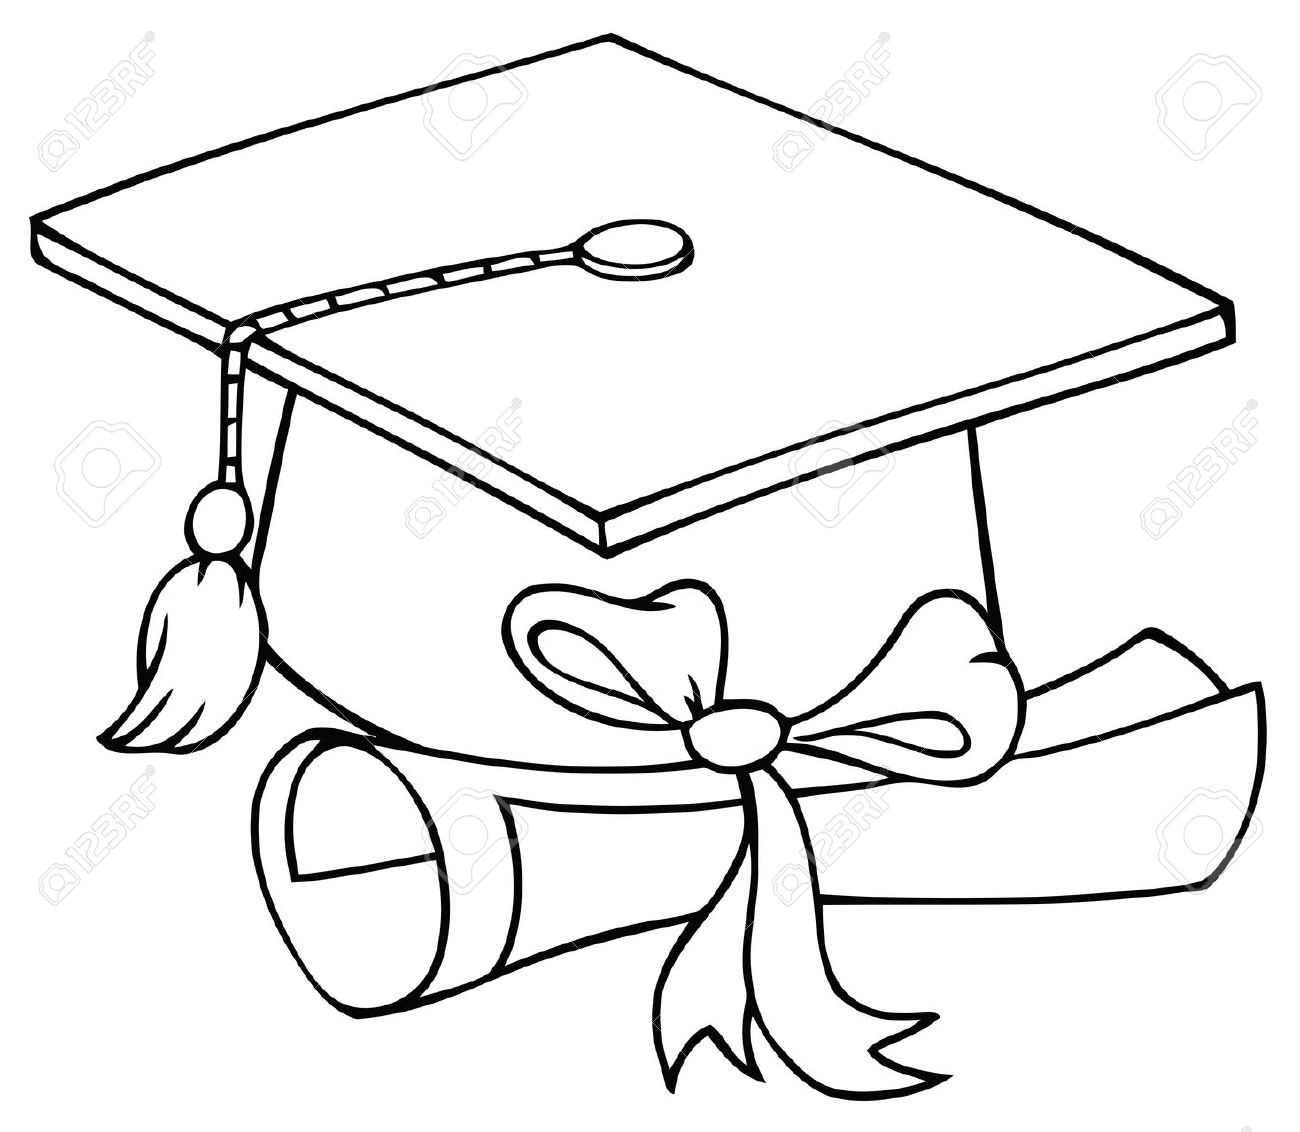 Graduation Black And White Clipart.